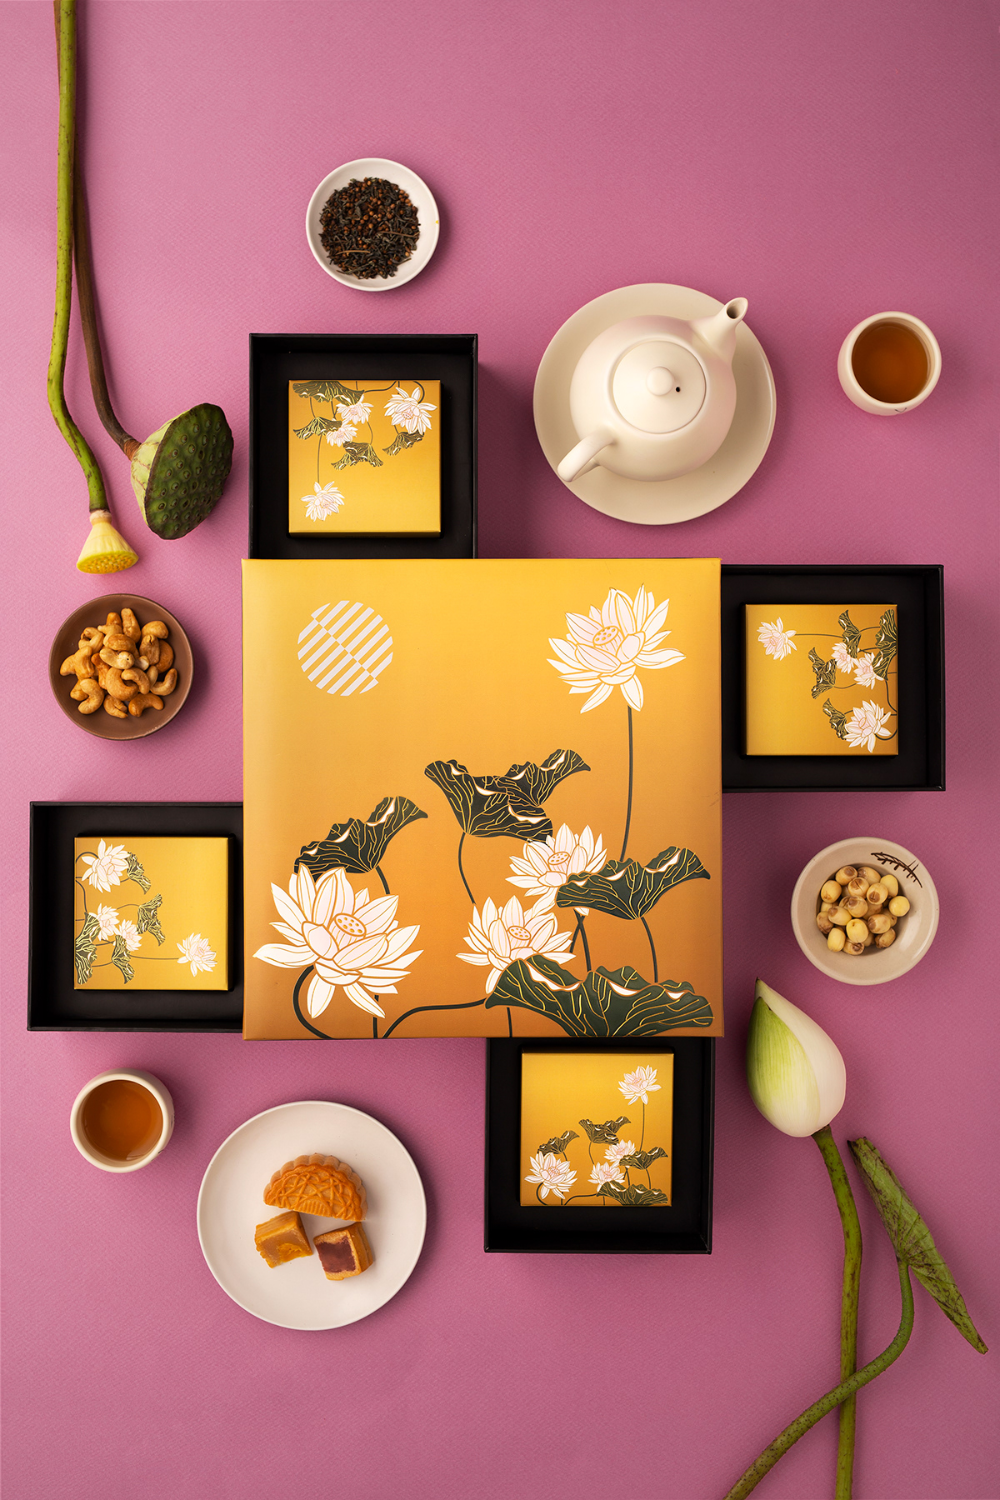 Pullman Hanoi Mooncake 2019 on Behance ในปี 2020